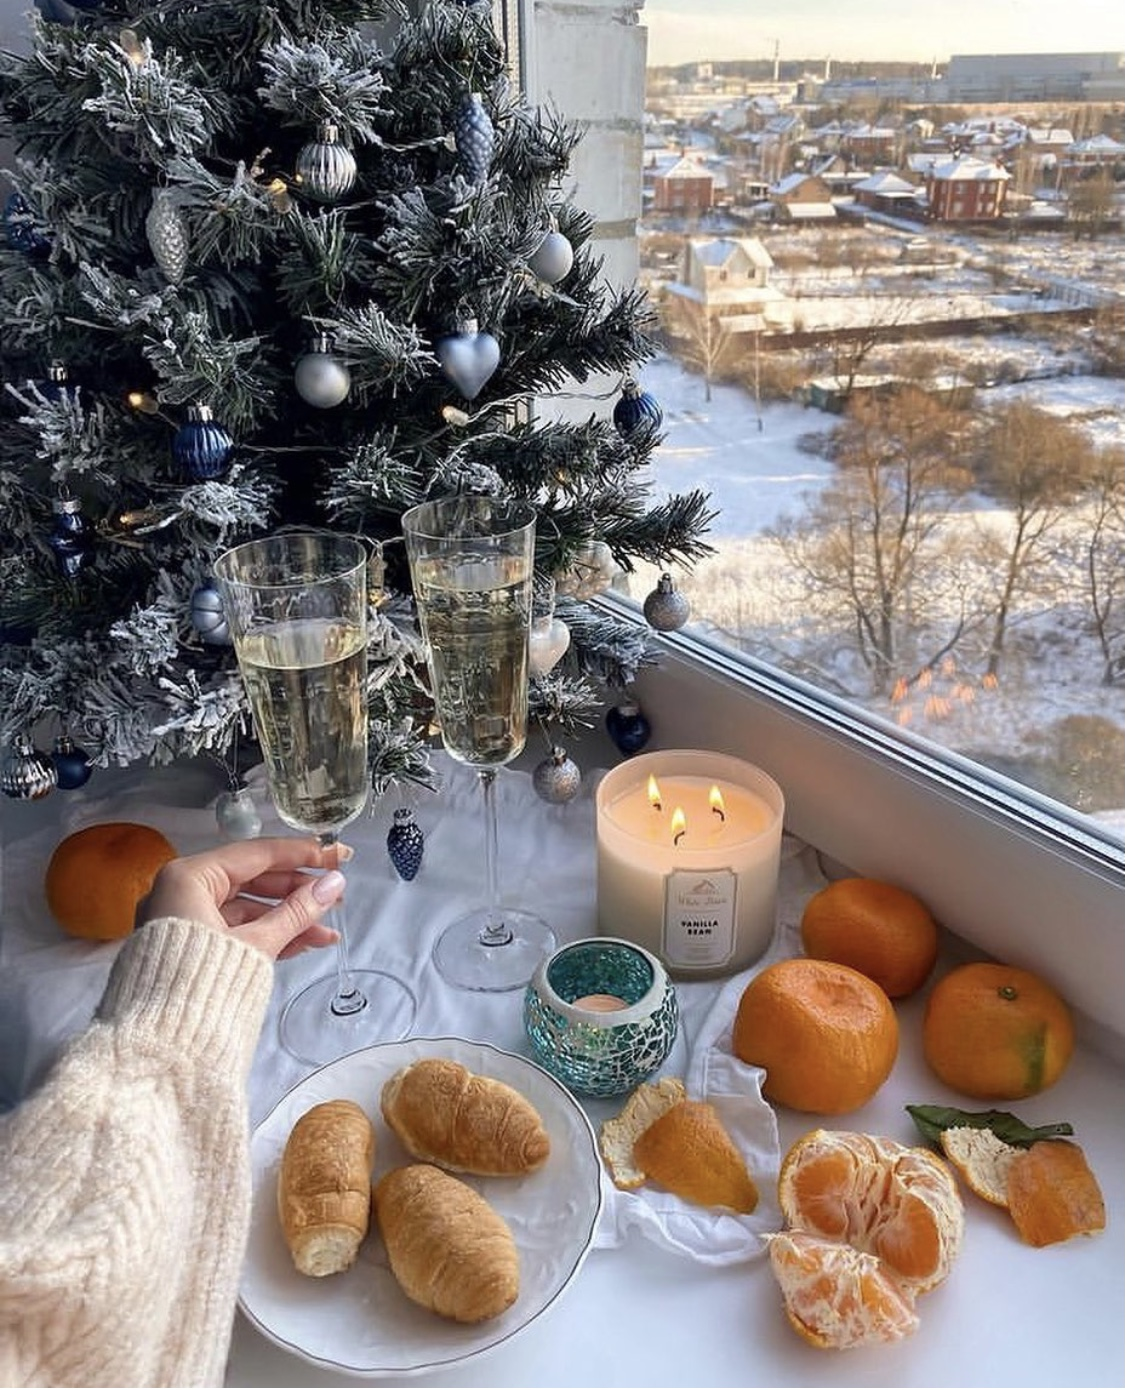 champagne flutes with Christmas tree in background